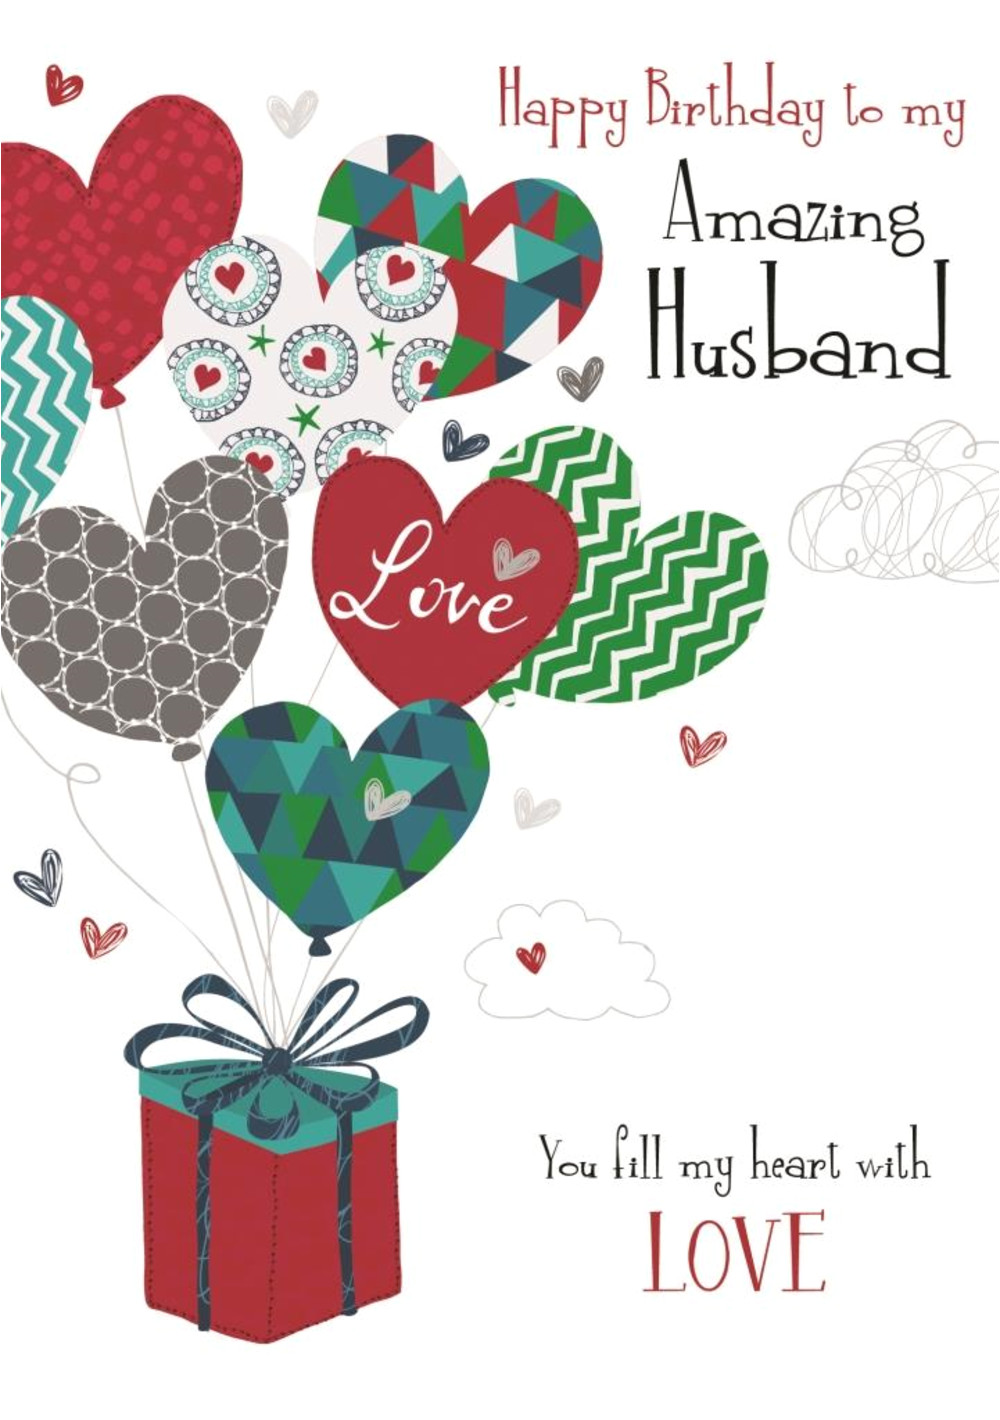 kcsndrs055 amazing husband birthday greeting card second nature daydreams cards